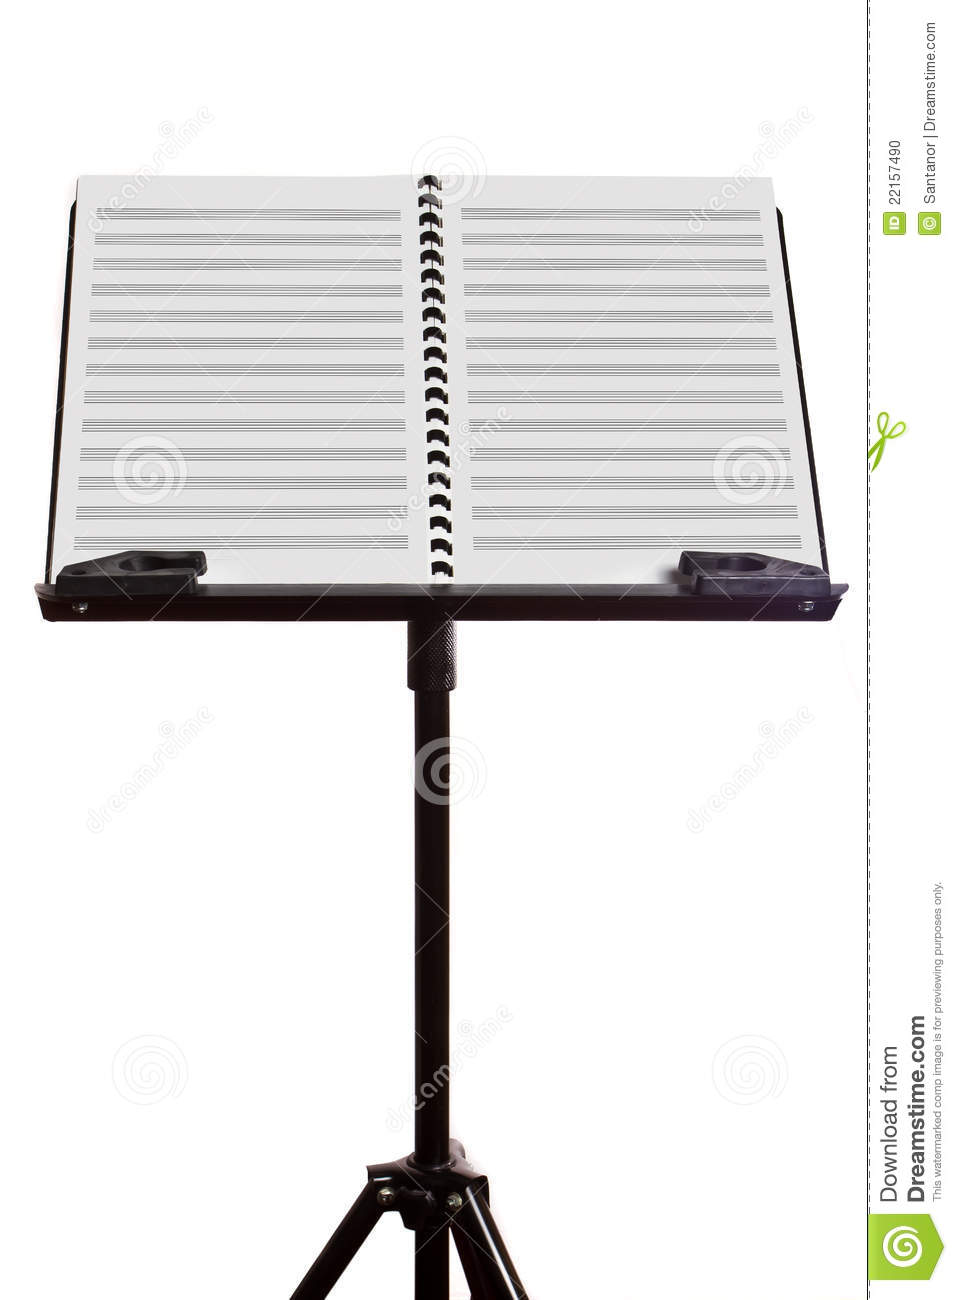 Blank music sheet on stand stock photo Image of music